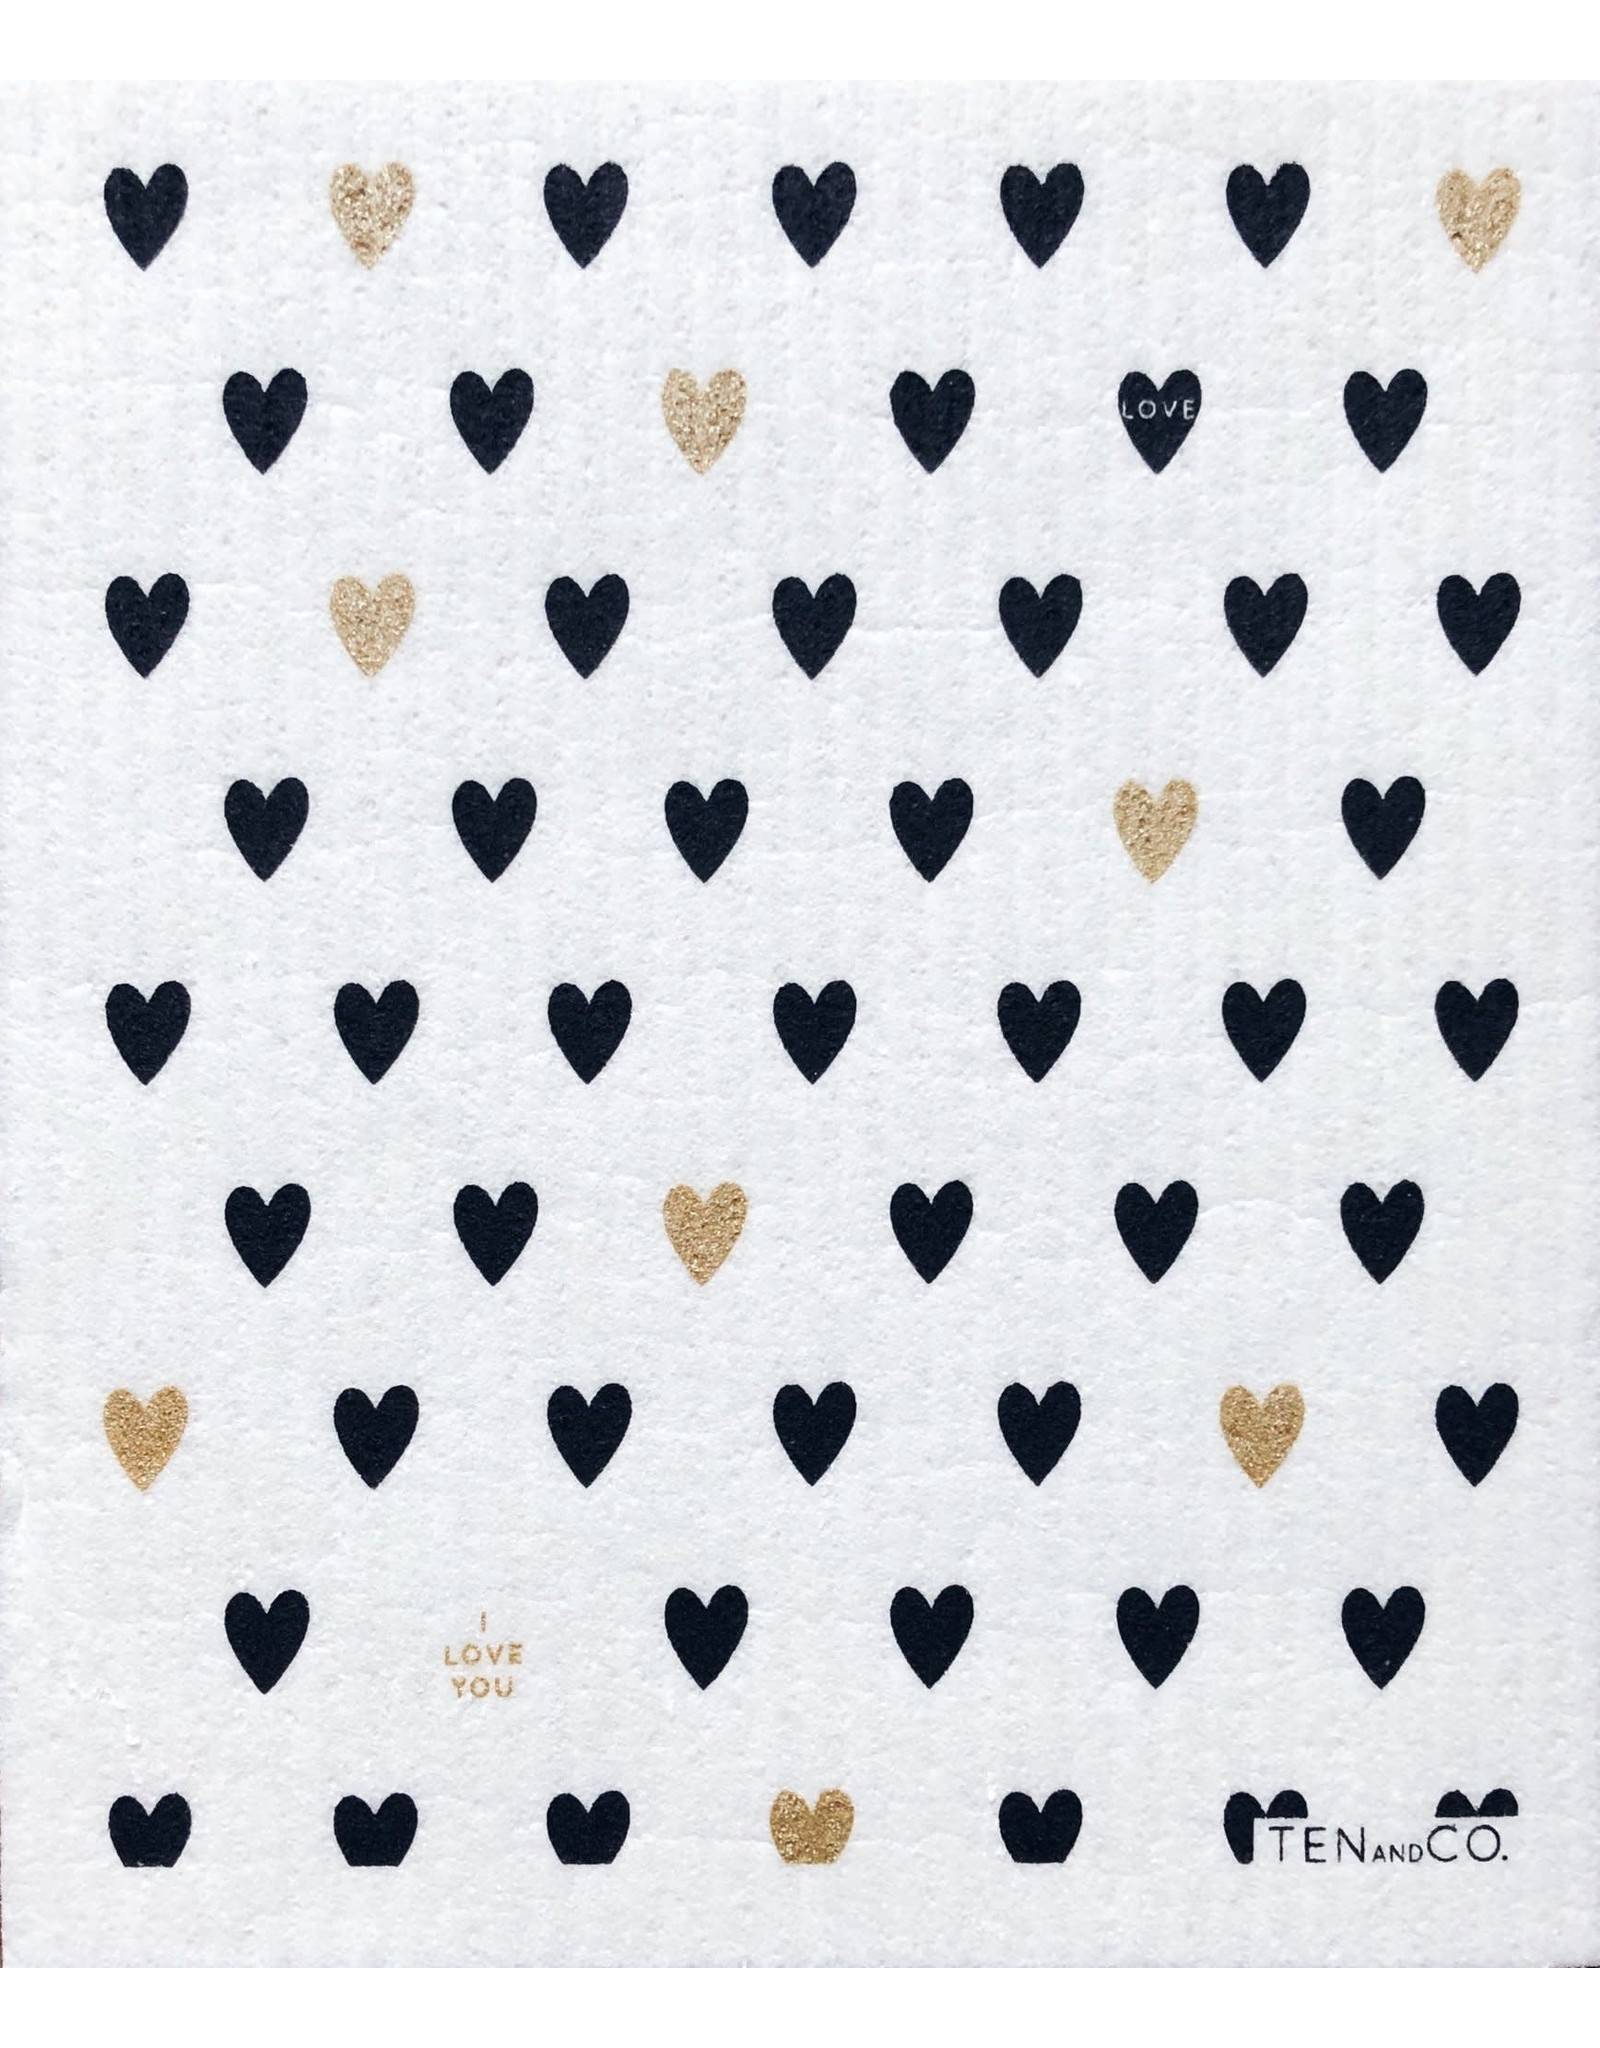 Ten & Co Heart Gold/Black Sponge Cloth